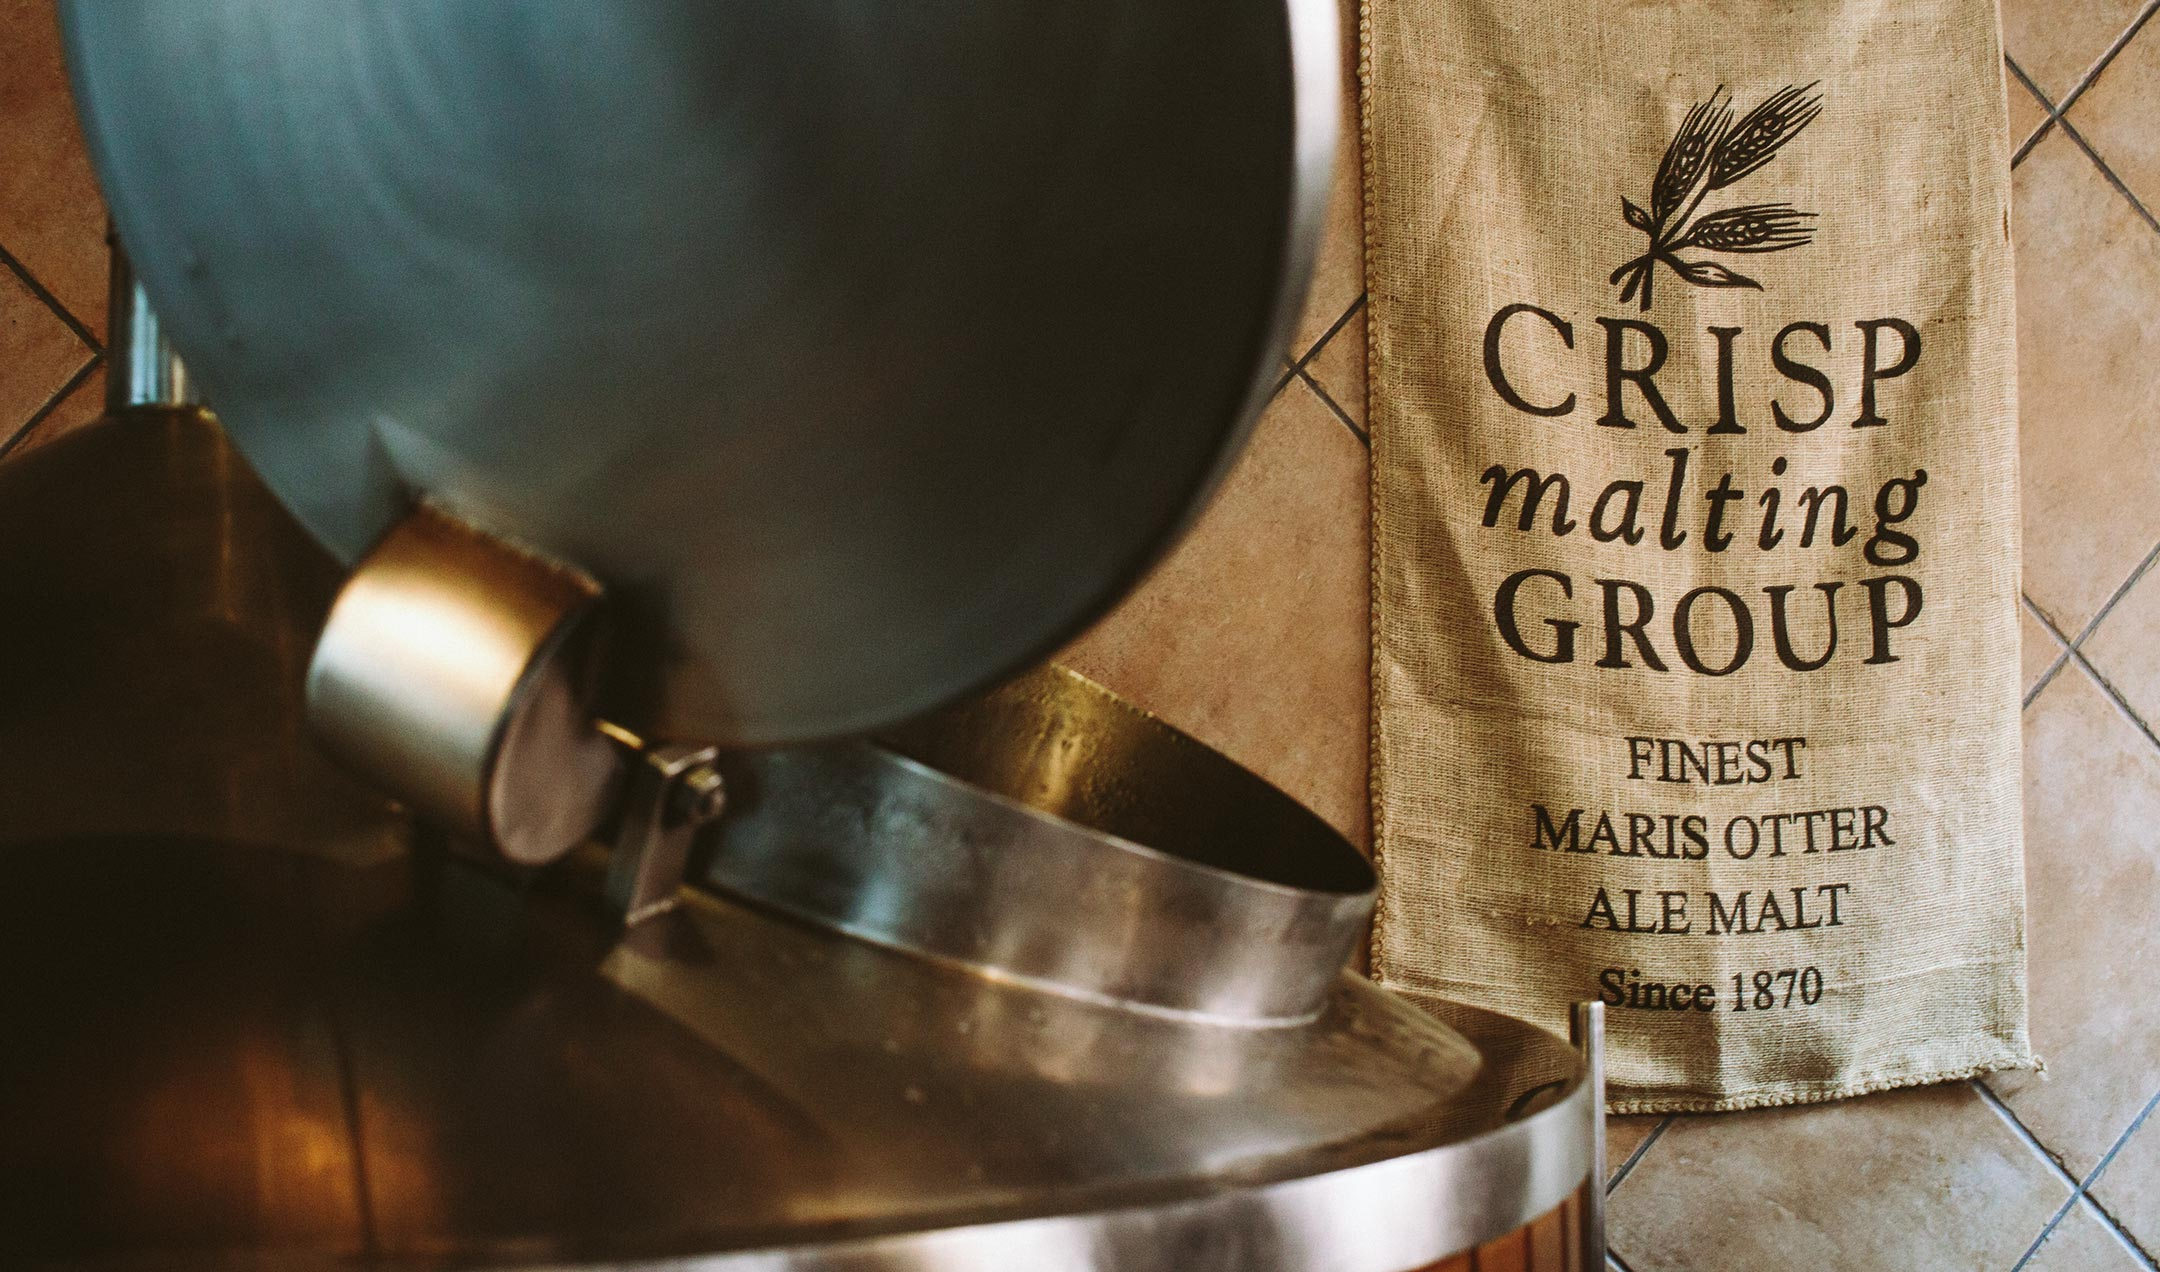 Crisp malting group